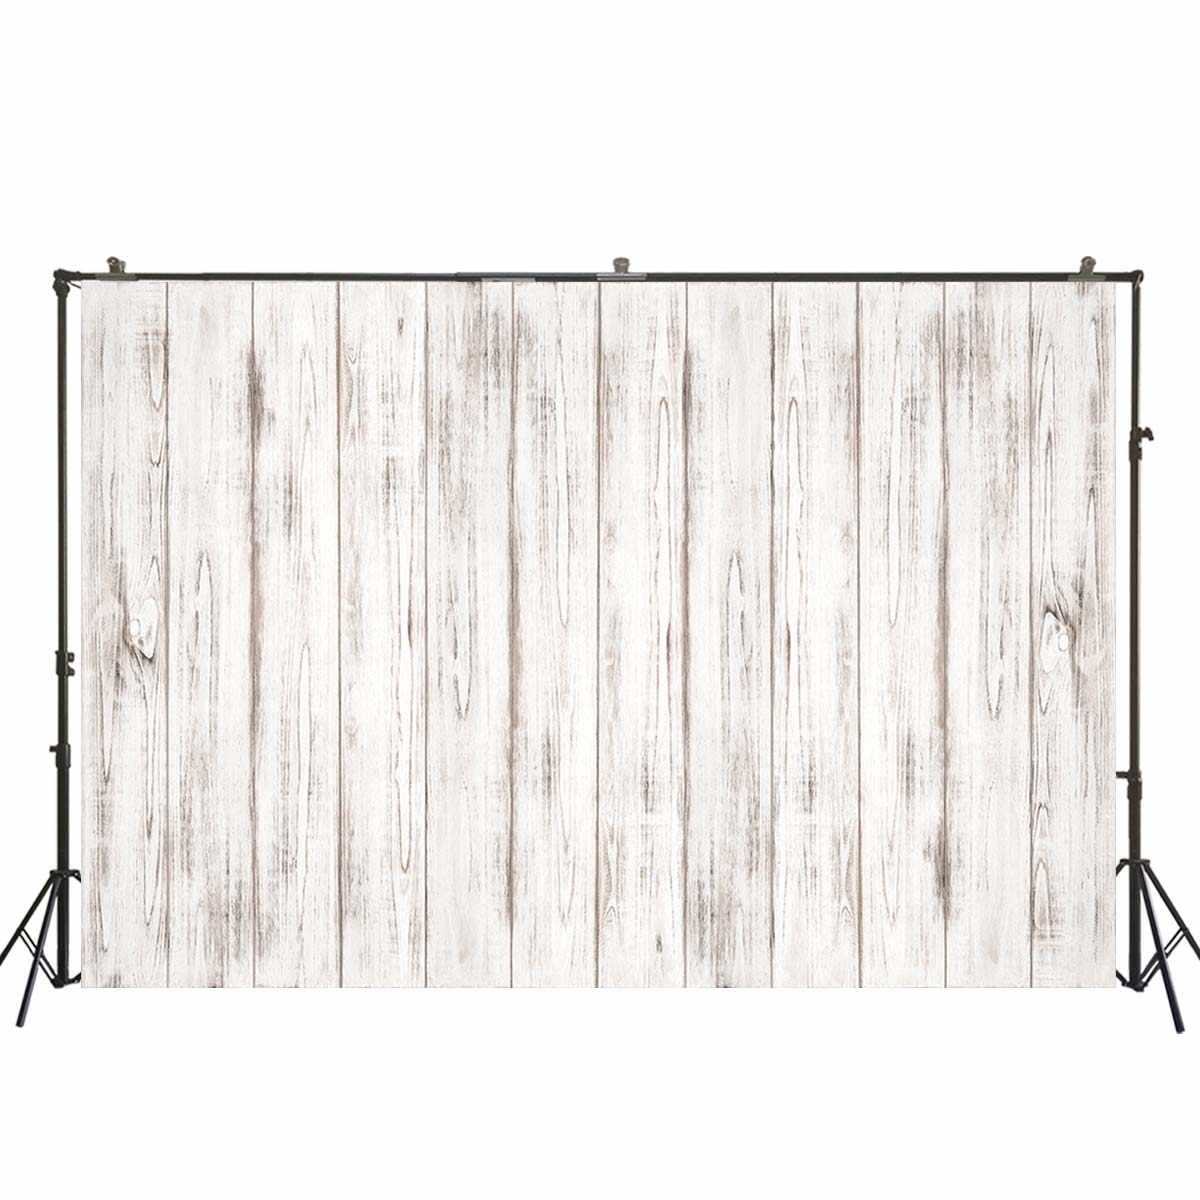 Rustic Brown Wood Grainy Backdrop Vintage Grunge Wood Pattern Portrait Background Photocall Studio Booth Party Filming Photoshoot Banner Decorations Photography backdrops